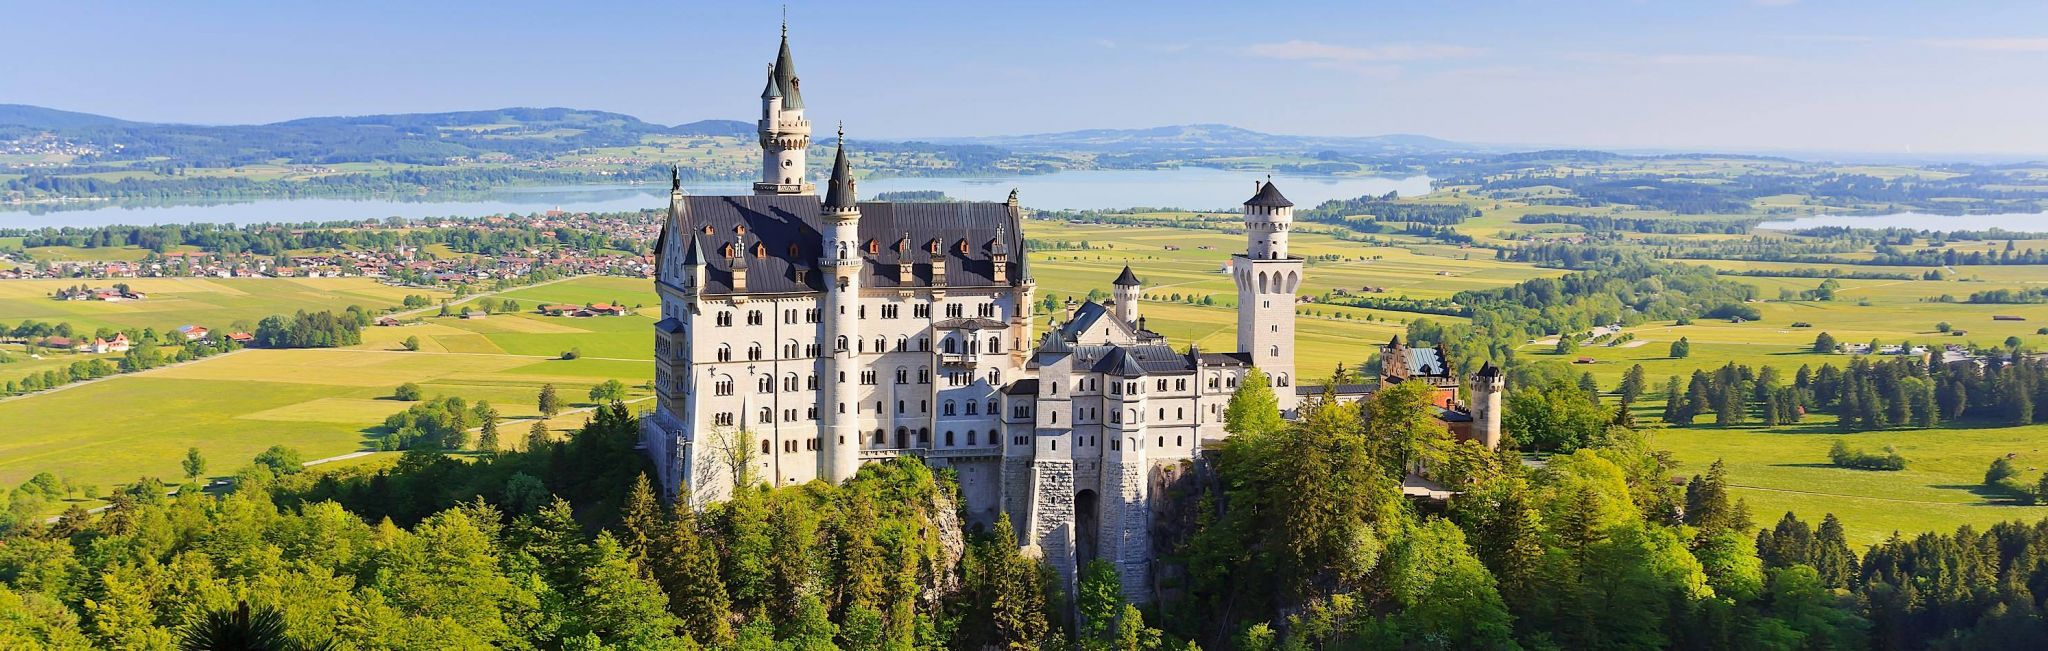 best germany tours vacations u0026 travel packages 2017 2018 zicasso